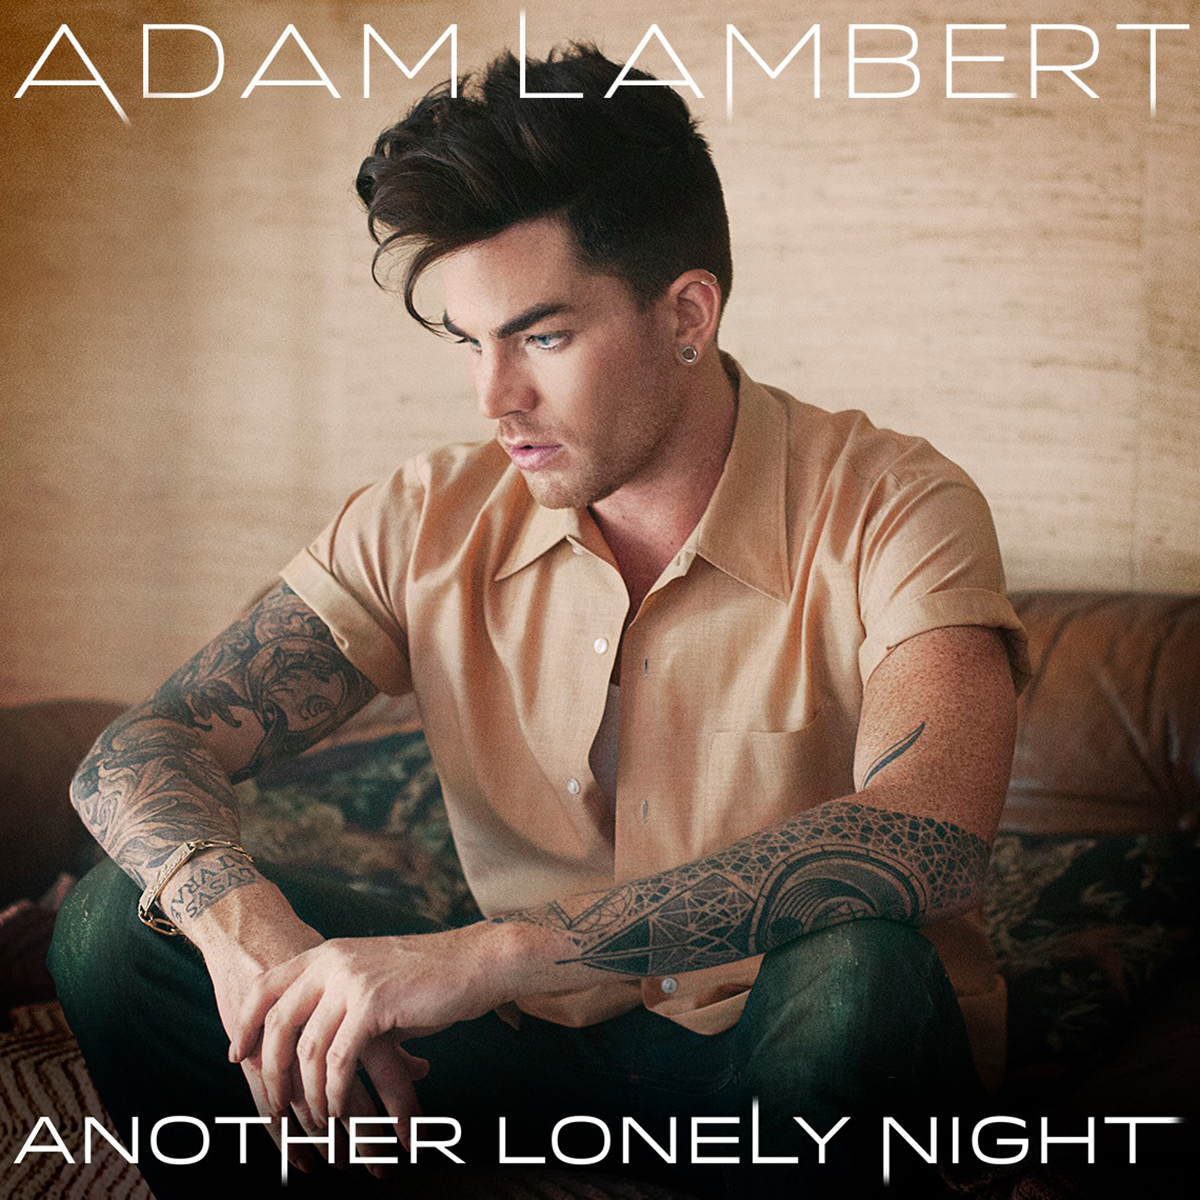 .@AdamLambert​ picks 'Another Lonely Night' as his next single. Listen: http://t.co/eEVdGkHIM7 http://t.co/56jQJ7vf5F